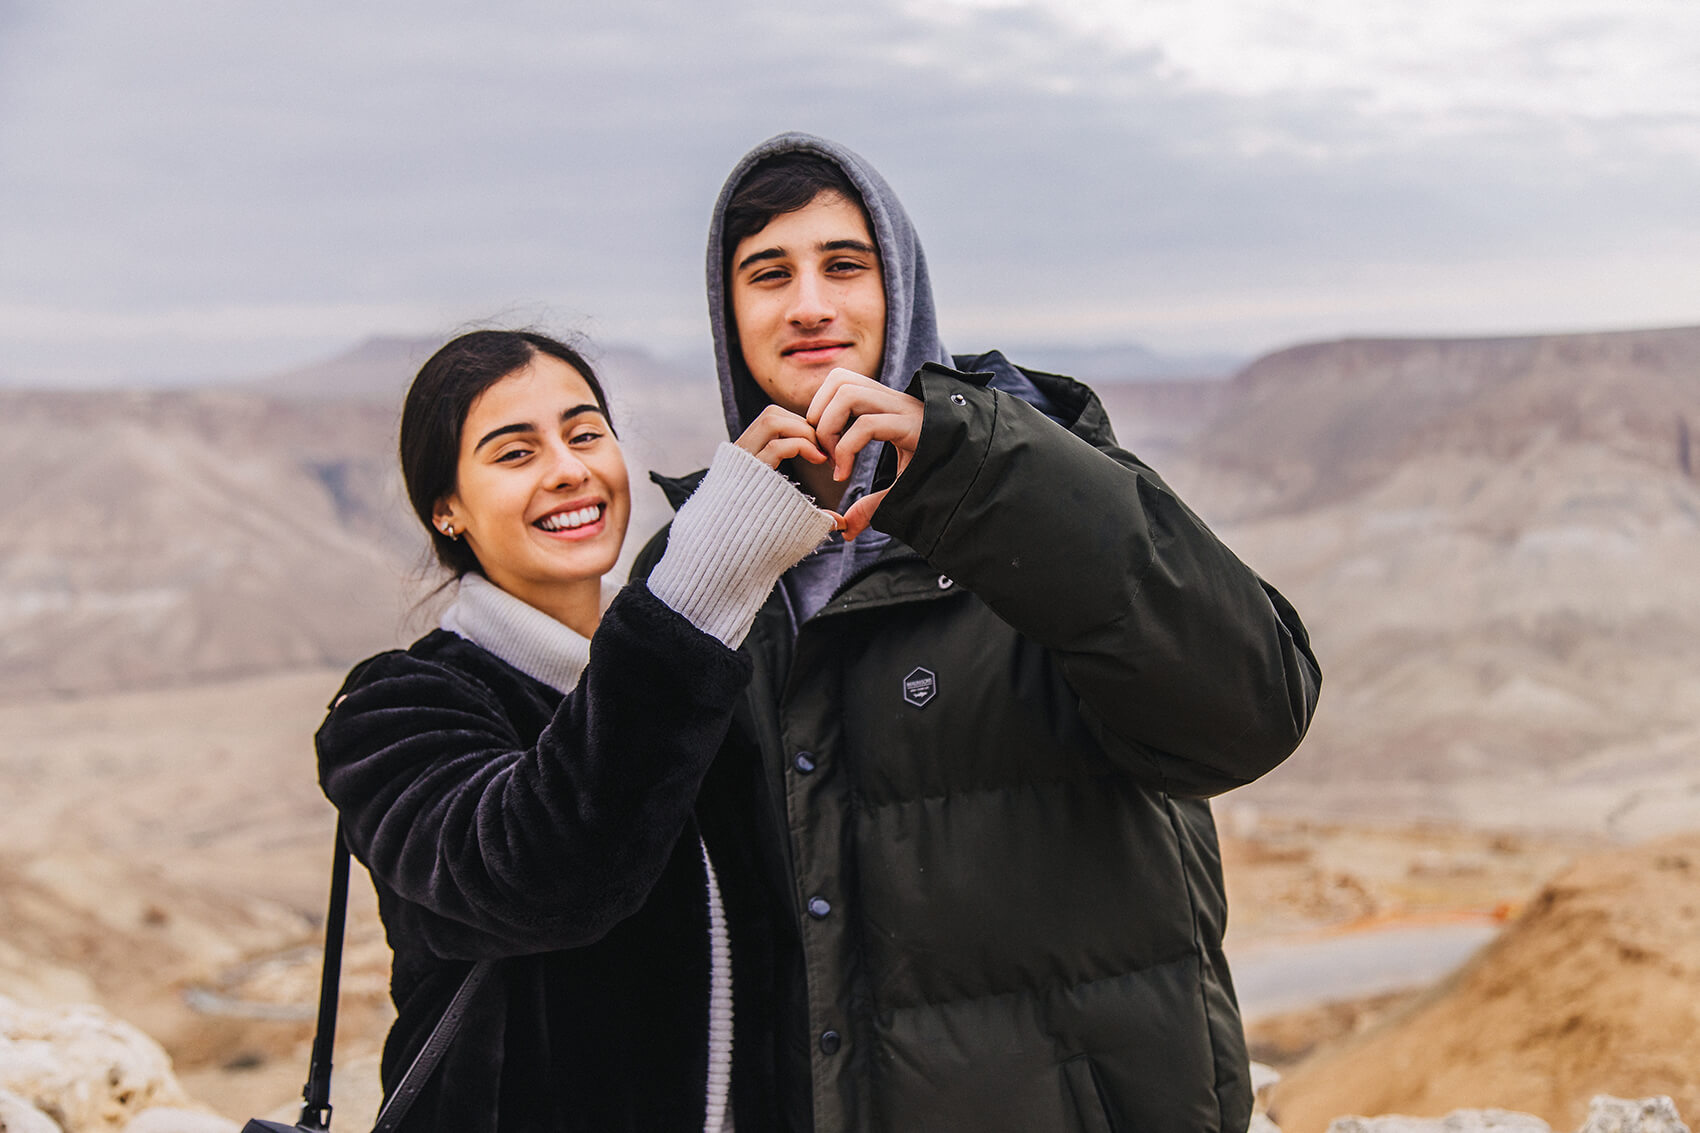 Two Birthright Israel participants forming a heart with their hands in the Negev)